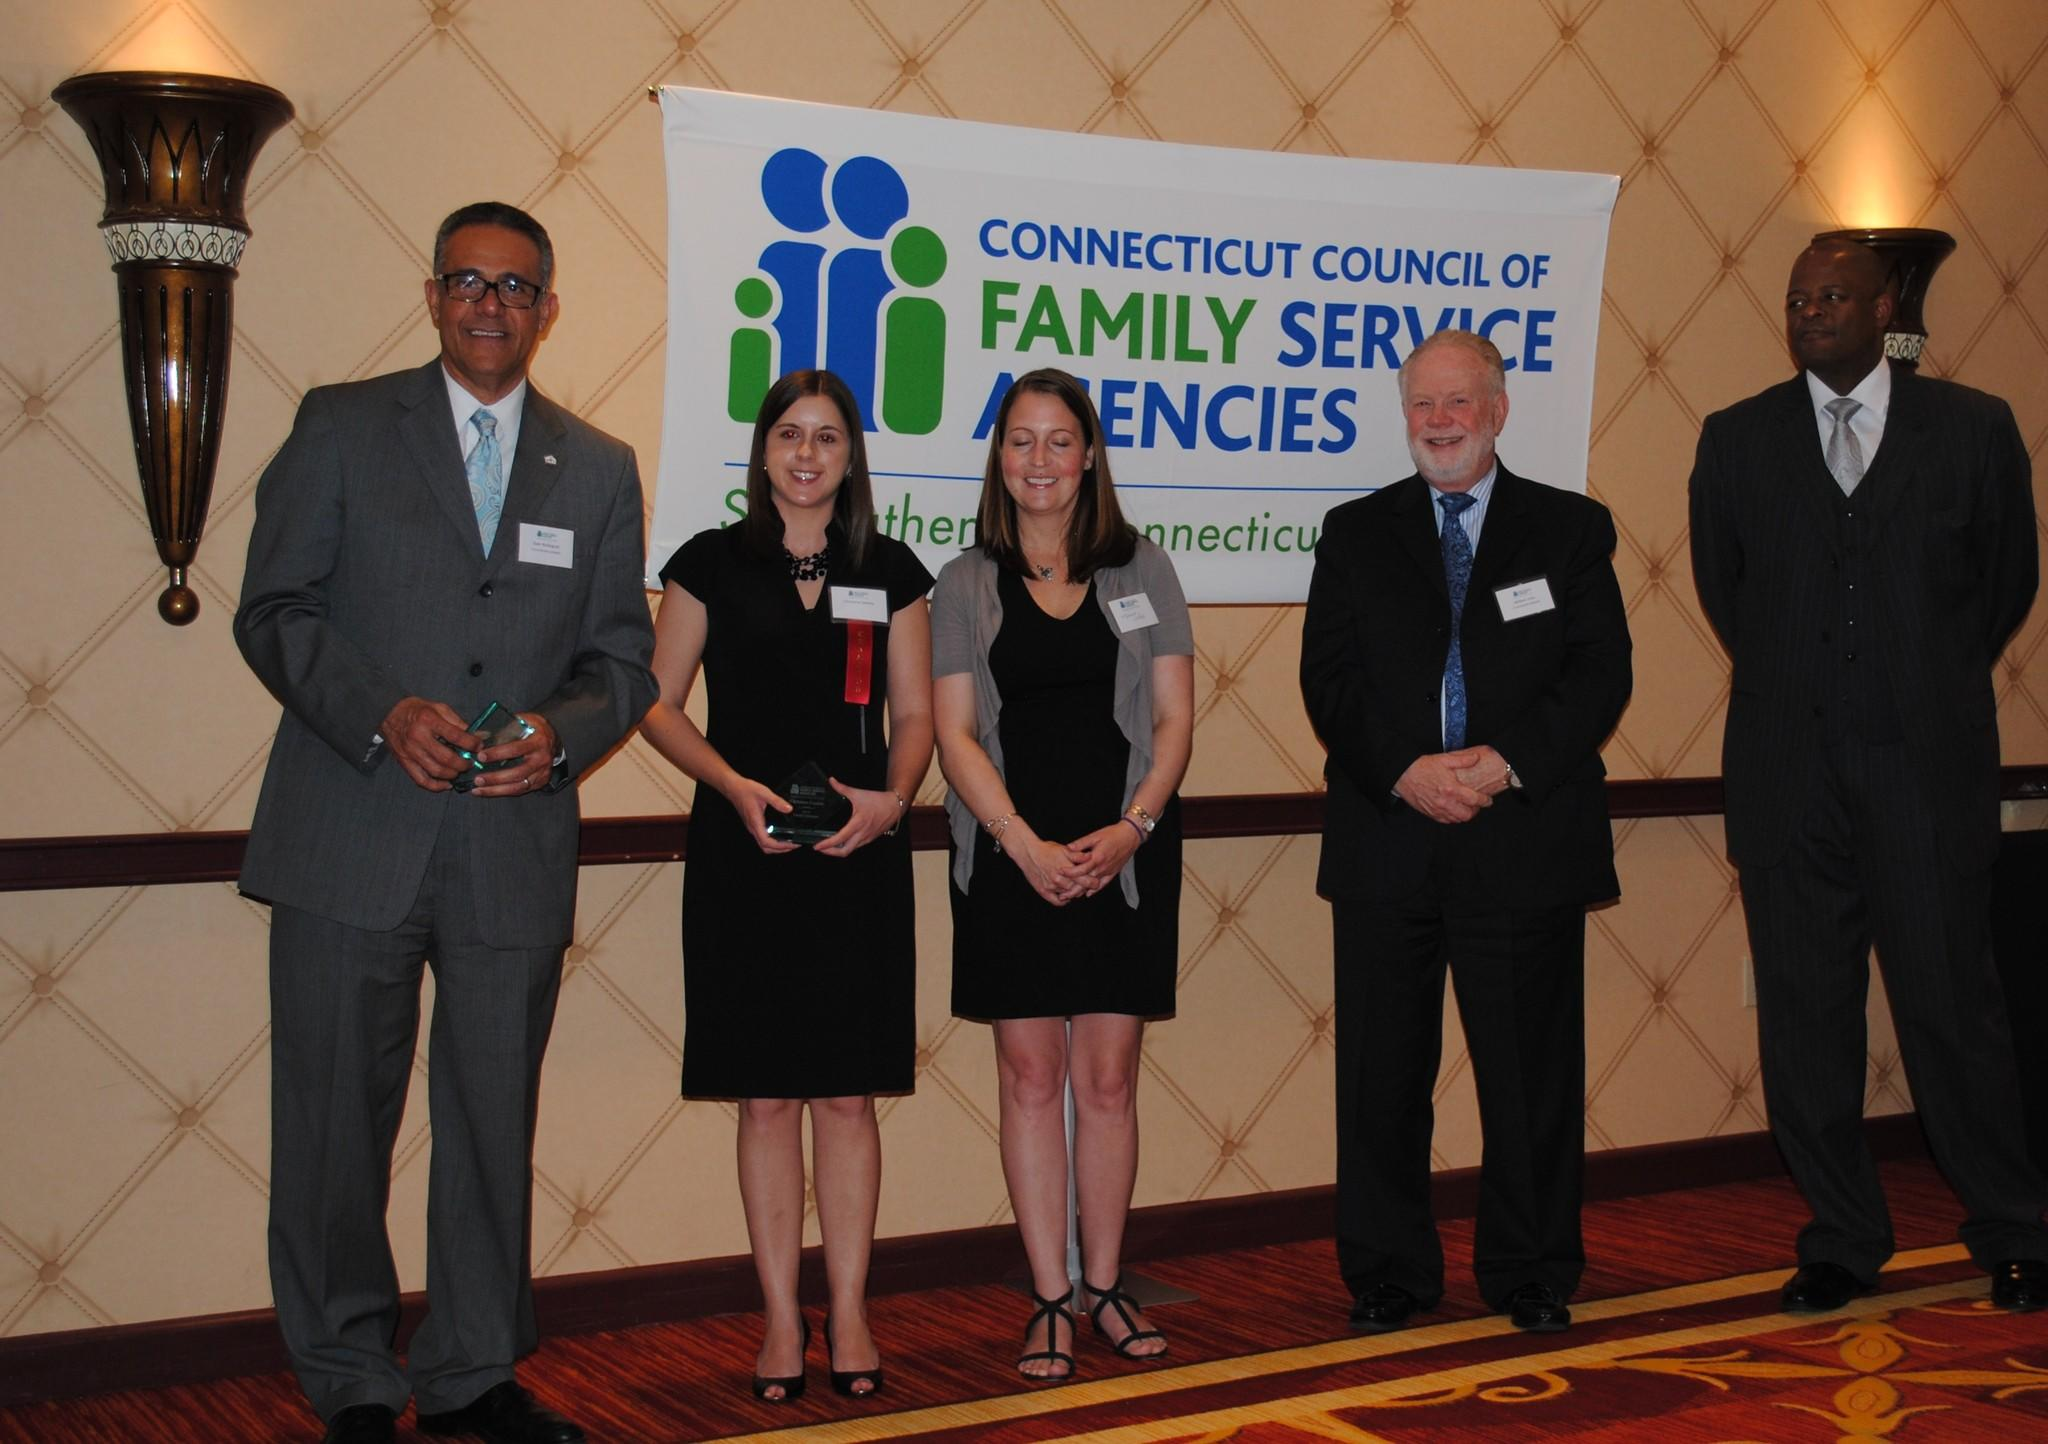 Left to right: Galo Rodriguez, Village president & CEO; Christina Coutras, Village clinician and Family Champion honoree; Melissa White, Village associate vice president for programs; Bill Hass, Board chair of the Connecticut Council for Family Service Agencies; Raymond Singleton, deputy commissioner of the Connecticut Department of Social Services.